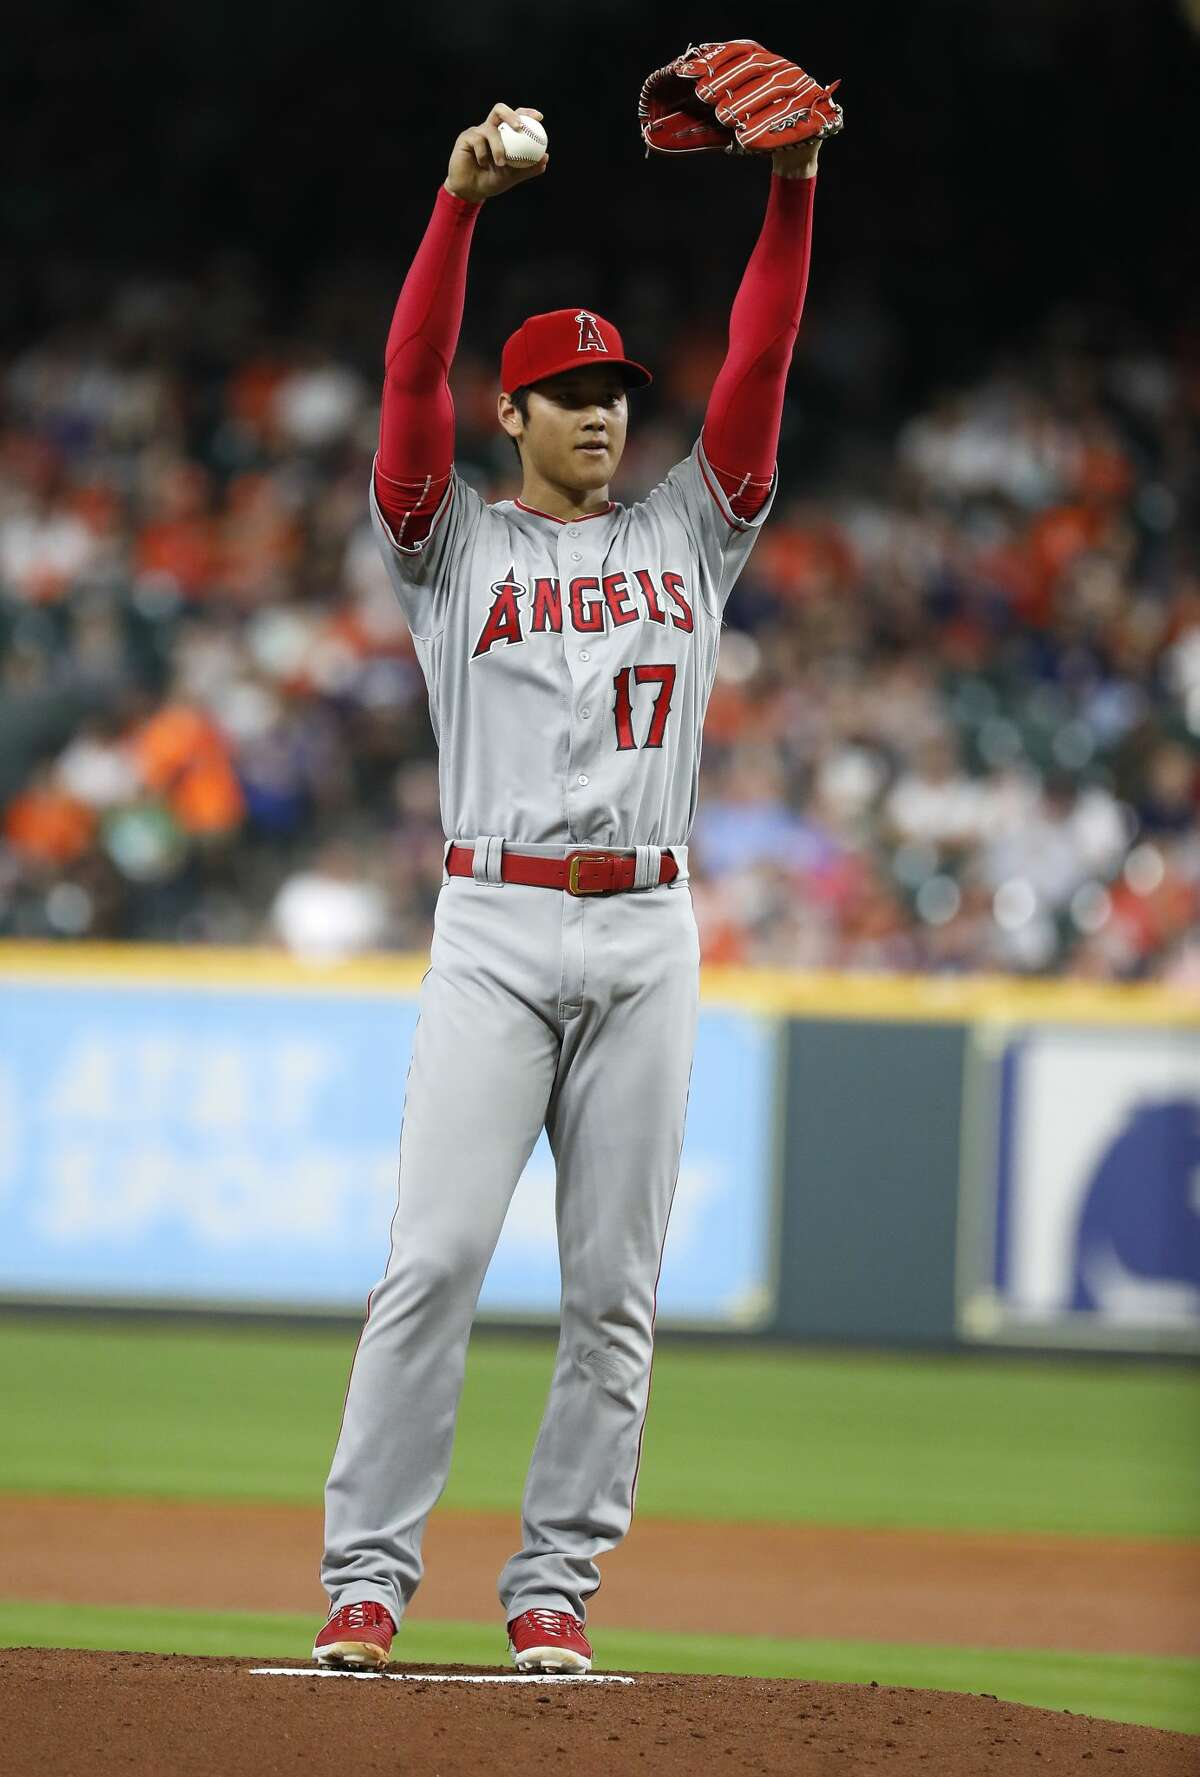 Los Angeles Angels starting pitcher Shohei Ohtani (17) between pitches during the first inning of an MLB baseball game at Minute Maid Park, Sunday, September 2, 2018, in Houston.